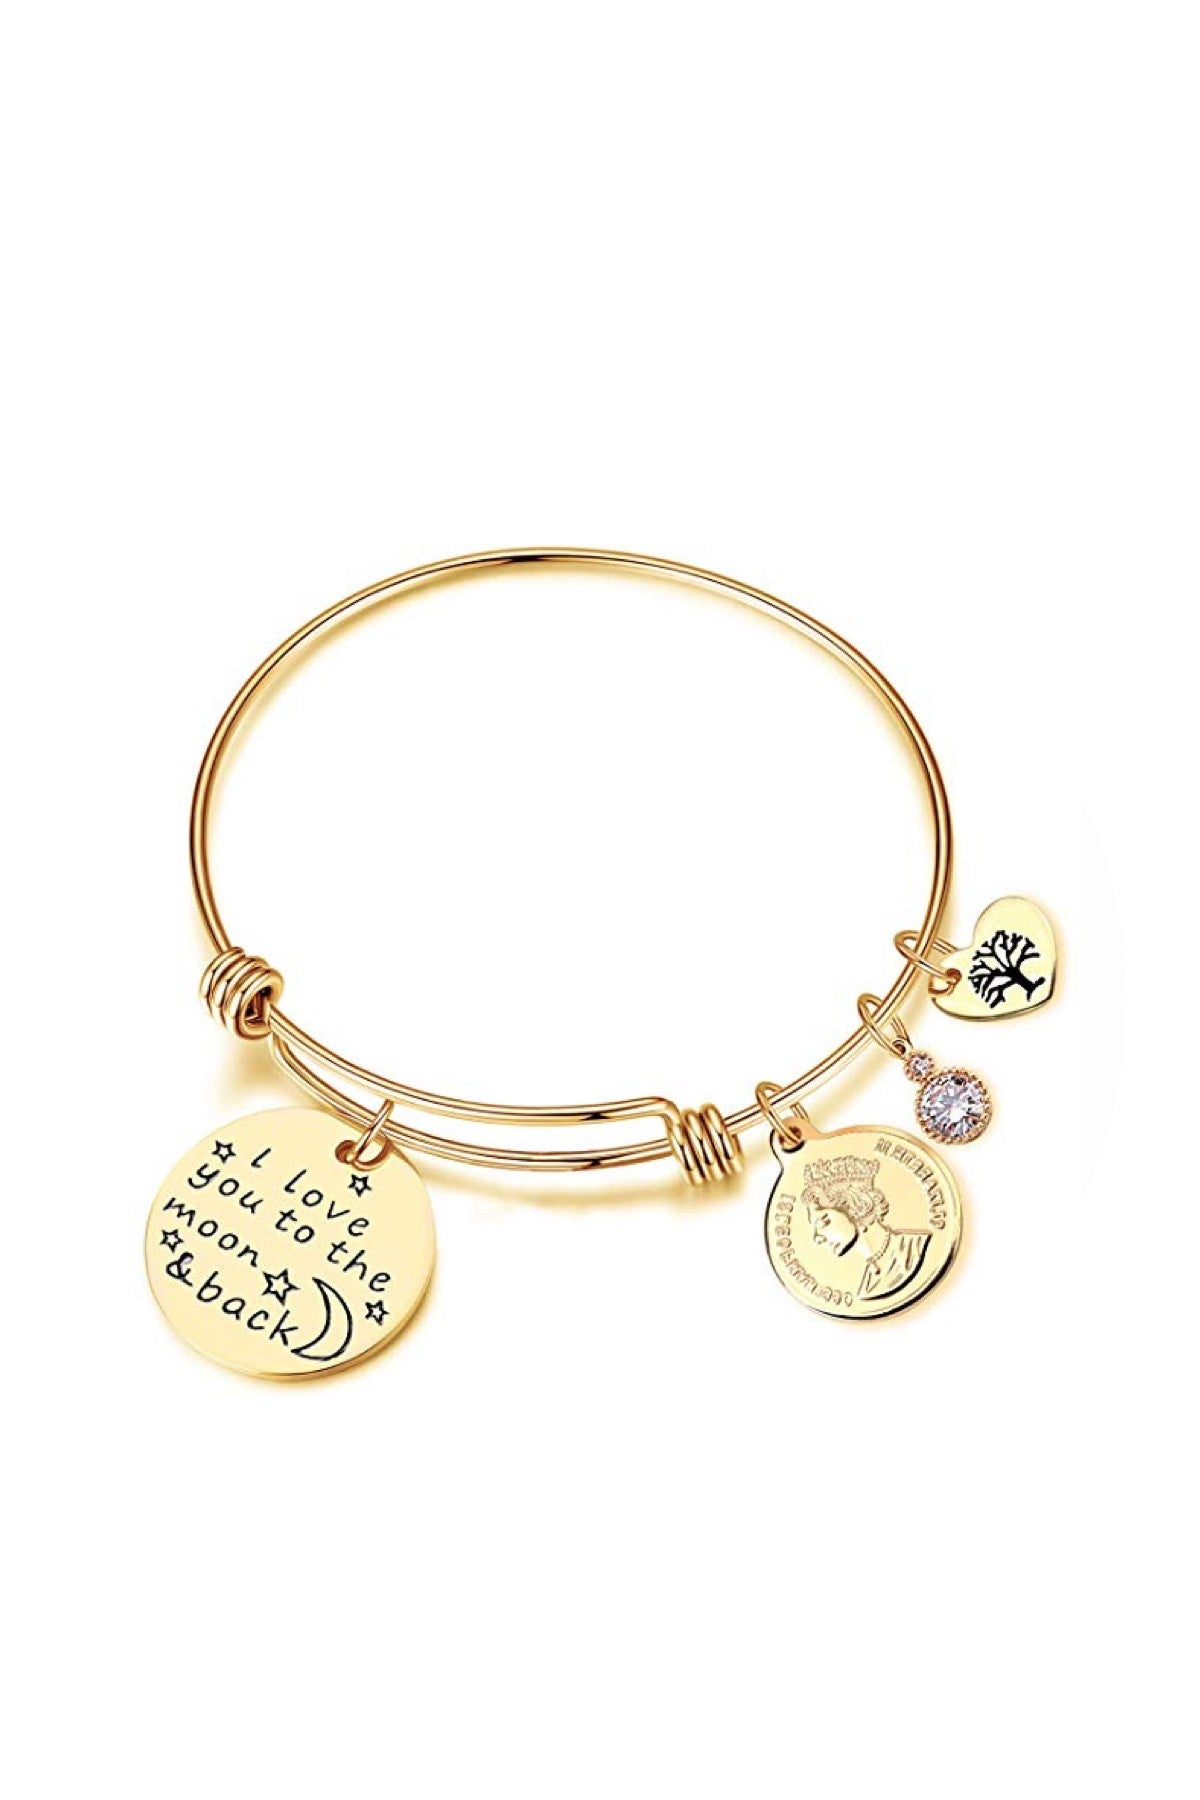 18K Gold Charm Love you Bracelet